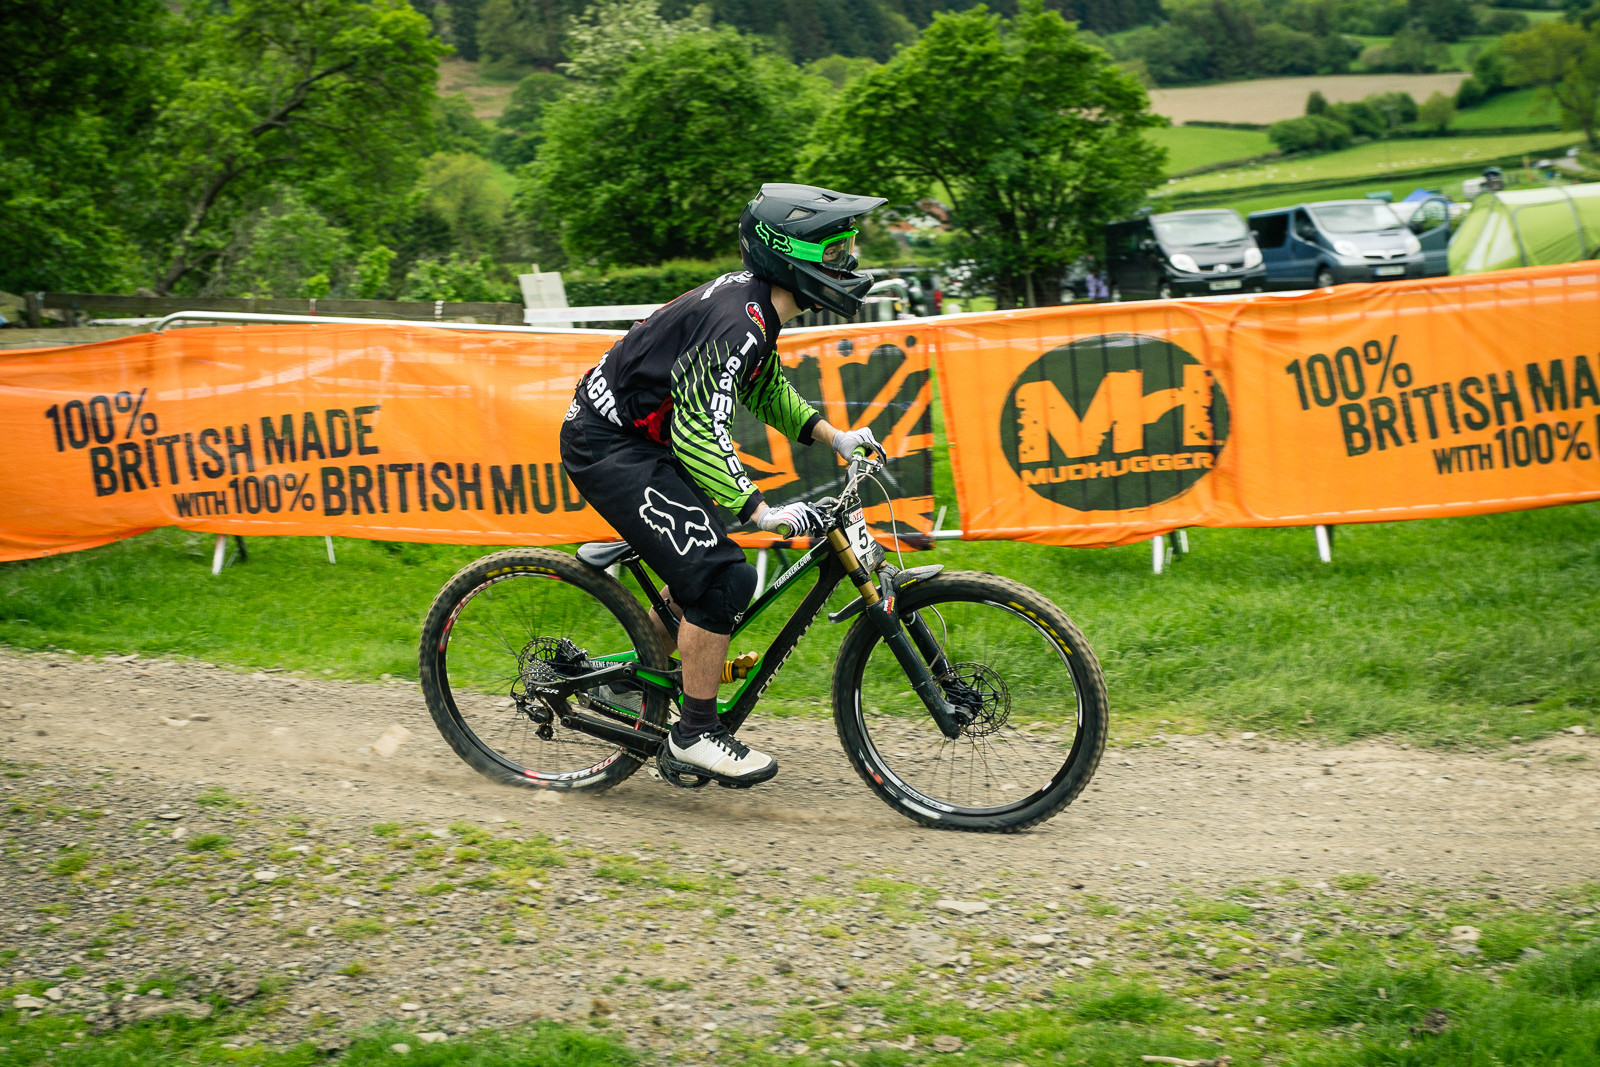 Specialized Demo G-ed Out at Llangollen - G-Out Project - Llangollen BDS 2015 - Mountain Biking Pictures - Vital MTB